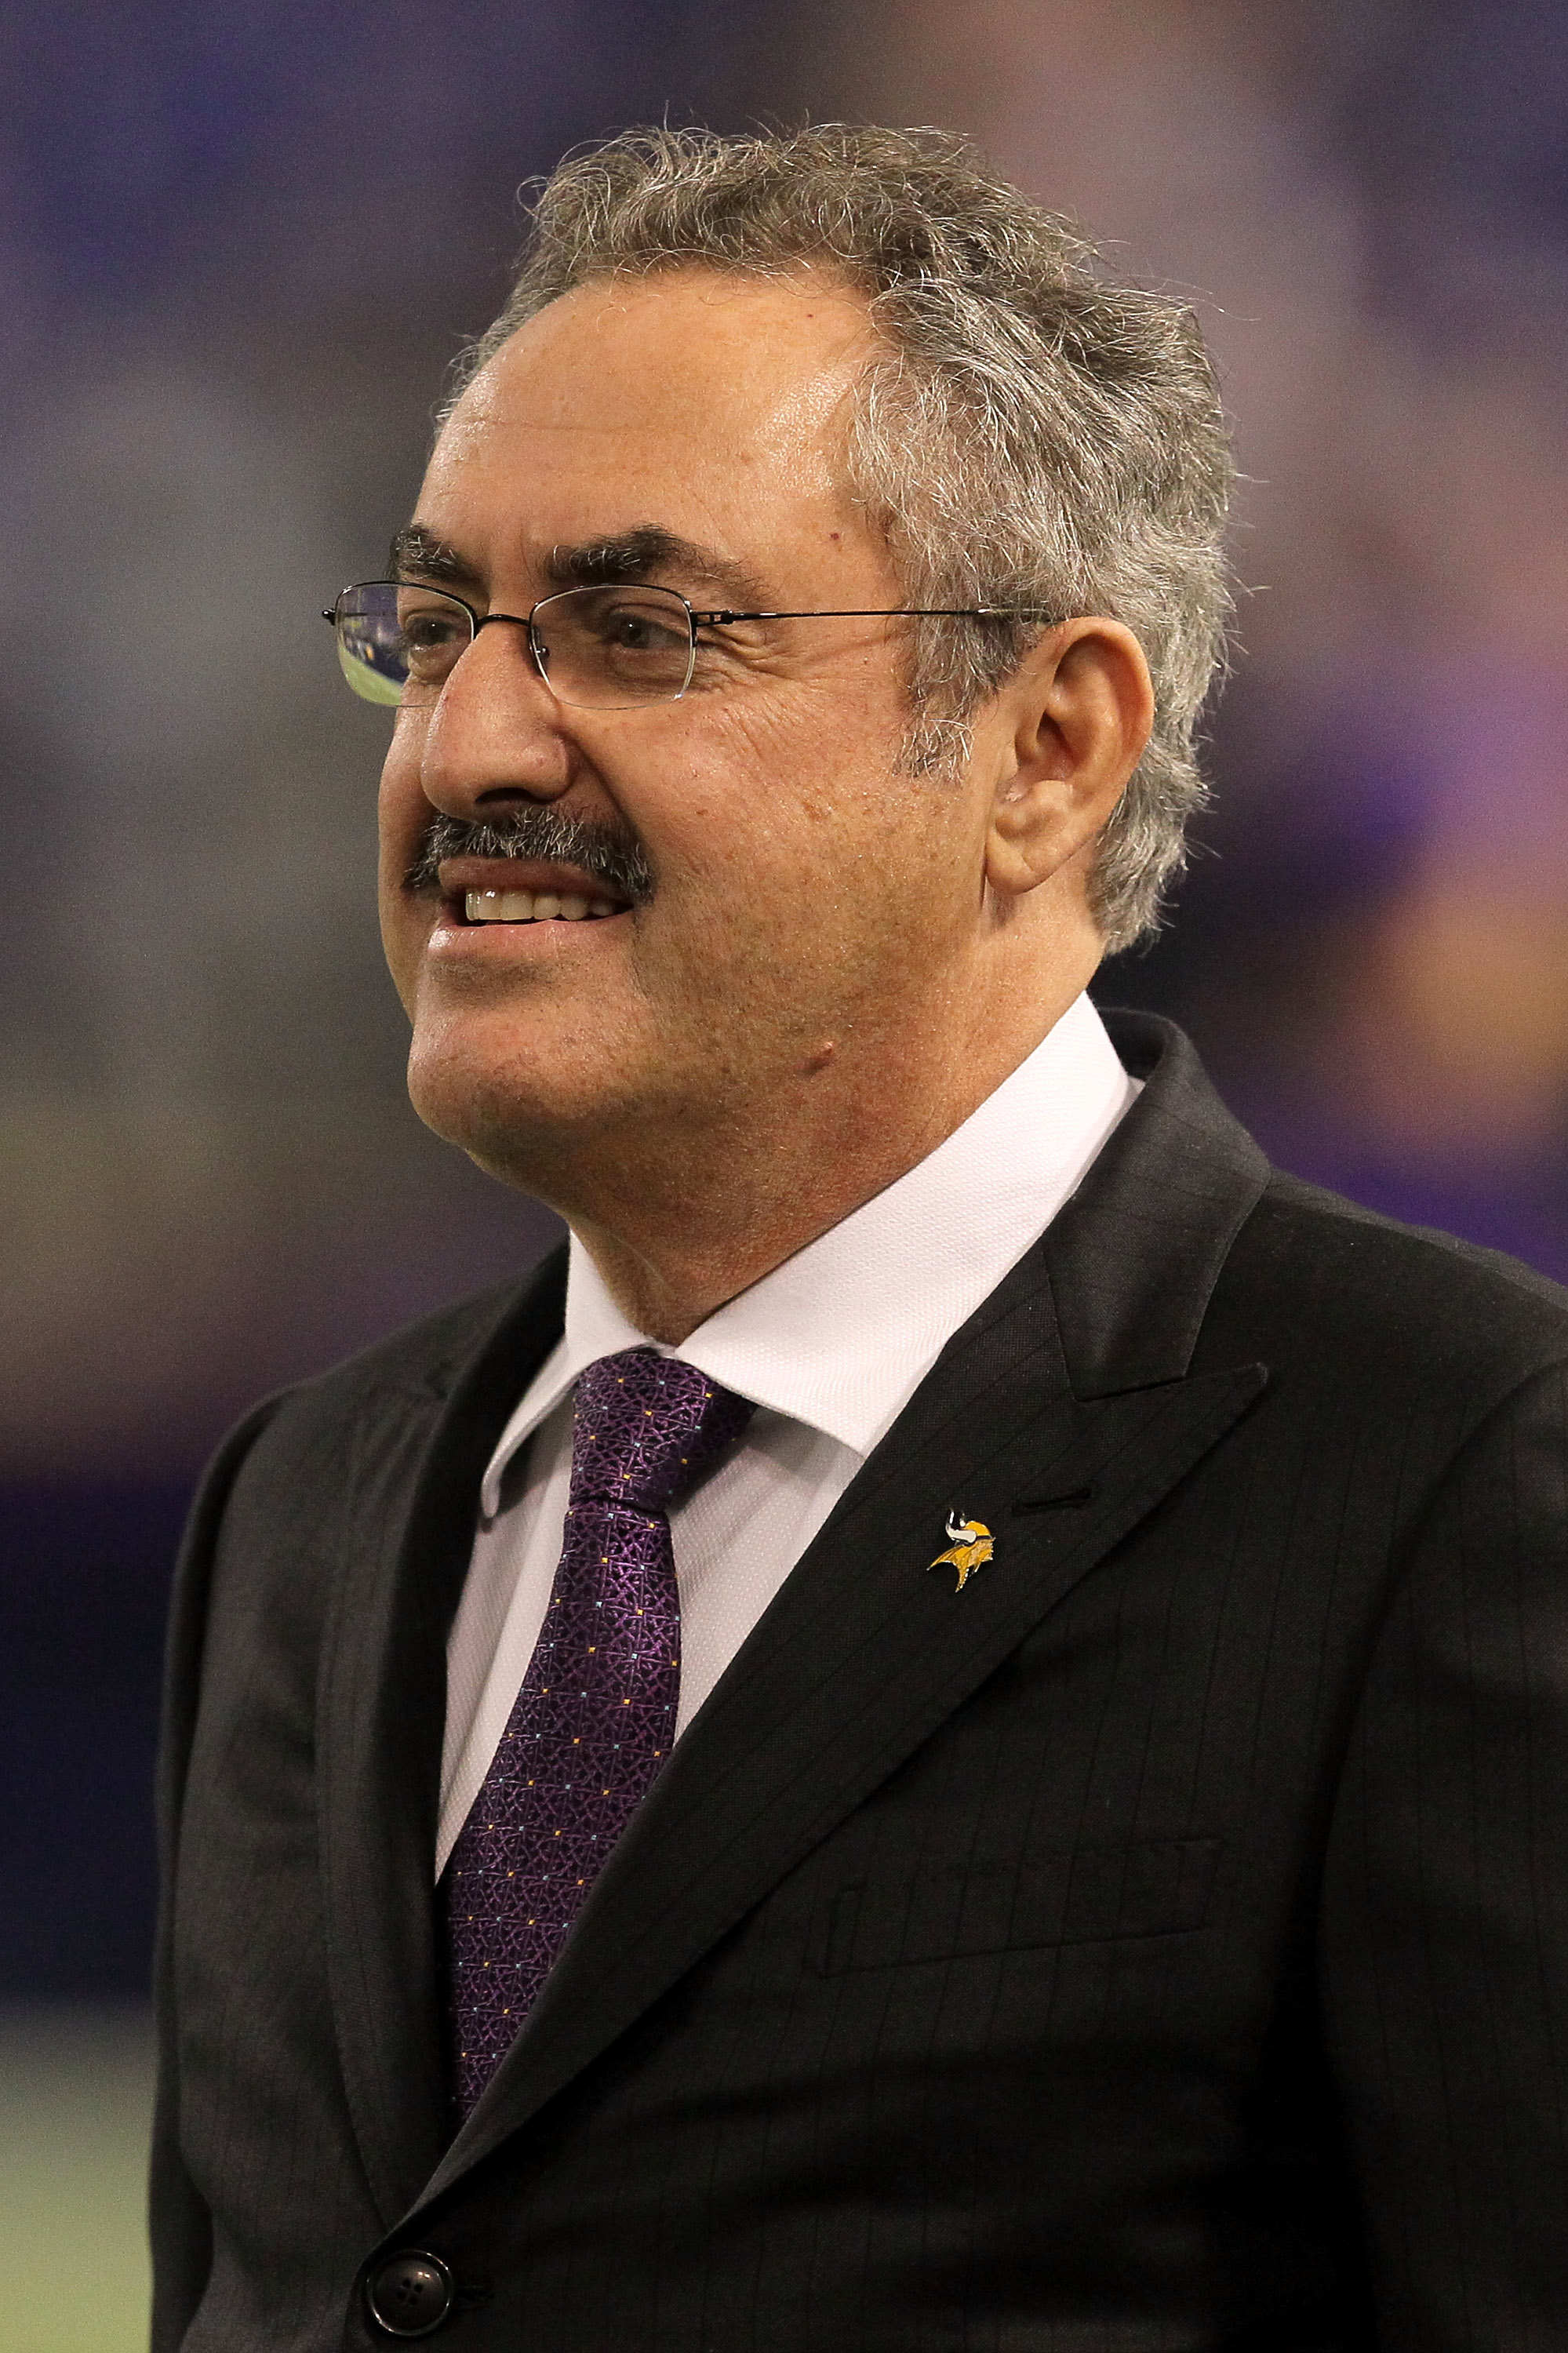 MINNEAPOLIS - NOVEMBER 7: Owner Zygi Wilf of the Minnesota Vikings looks on during warmups for the game with the Arizona Cardinals at Hubert H. Humphrey Metrodome on November 7, 2010 in Minneapolis, Minnesota.  (Photo by Stephen Dunn/Getty Images)